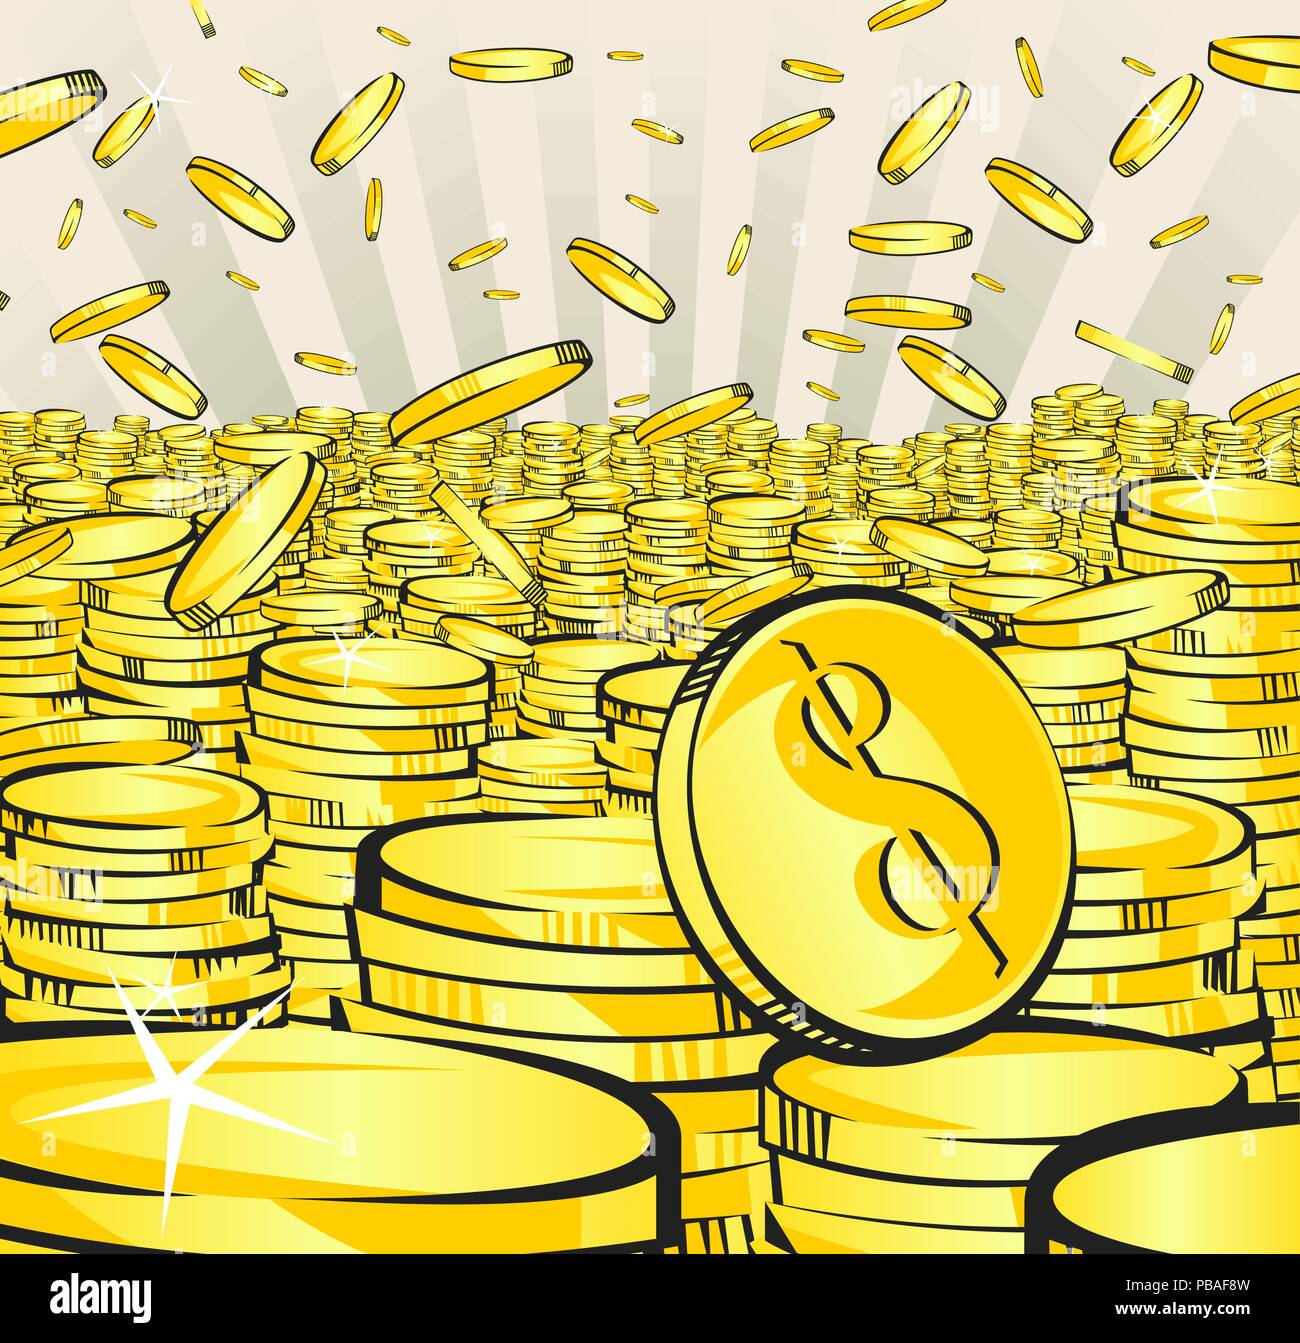 Golden money rain. Falling gold and stacks of coins. Retro vector illustration of the shining wealth. Lottery winning or bussiness success concept. Po - Stock Vector